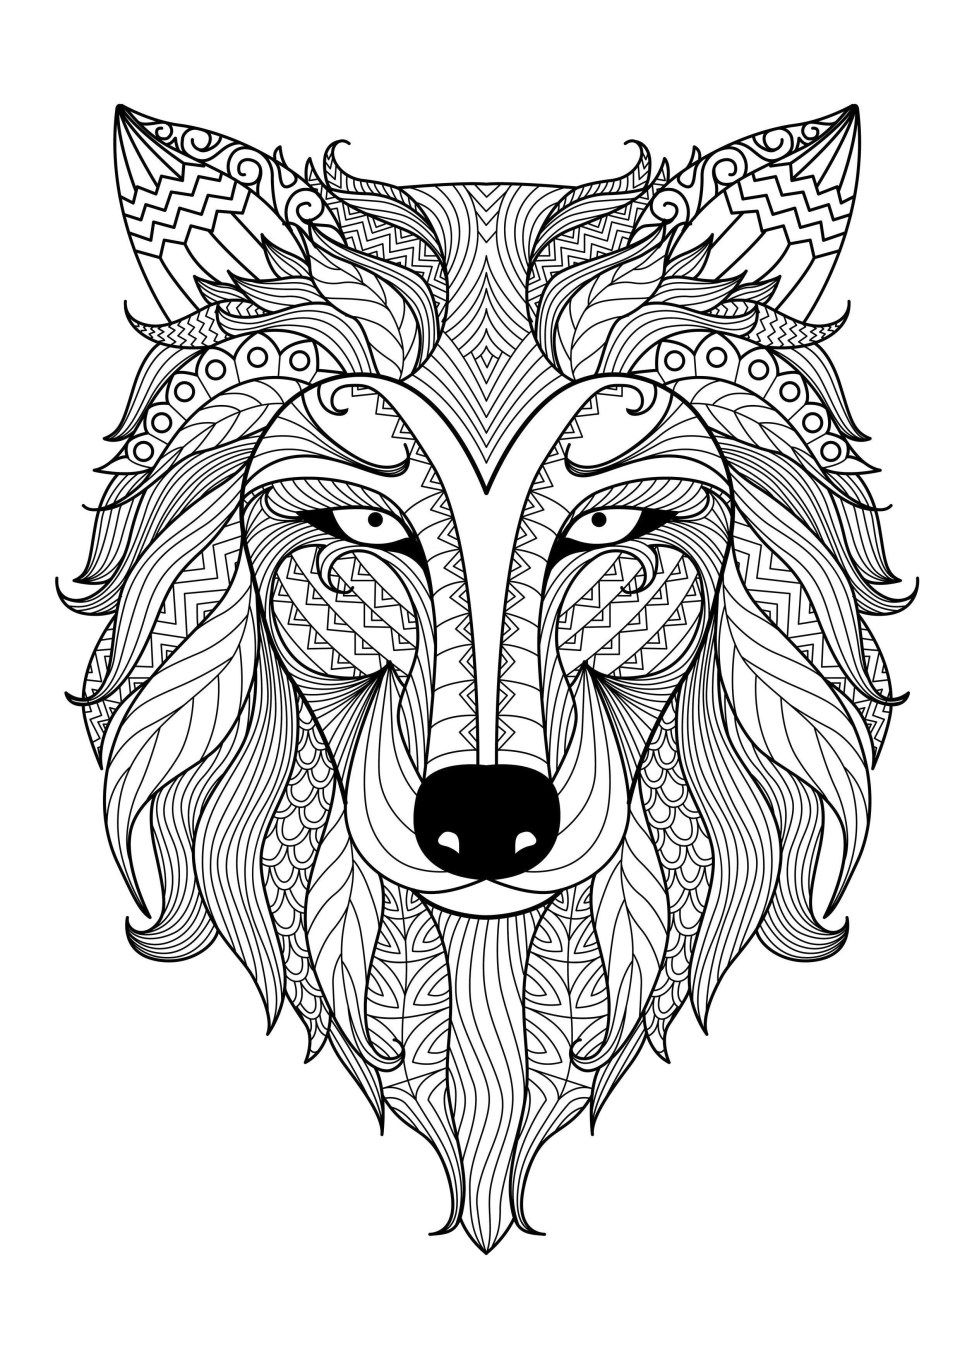 25 Inspiration Image Of Animal Mandala Coloring Pages Entitlementtrap Com Animal Coloring Pages Mandala Coloring Pages Animal Coloring Books